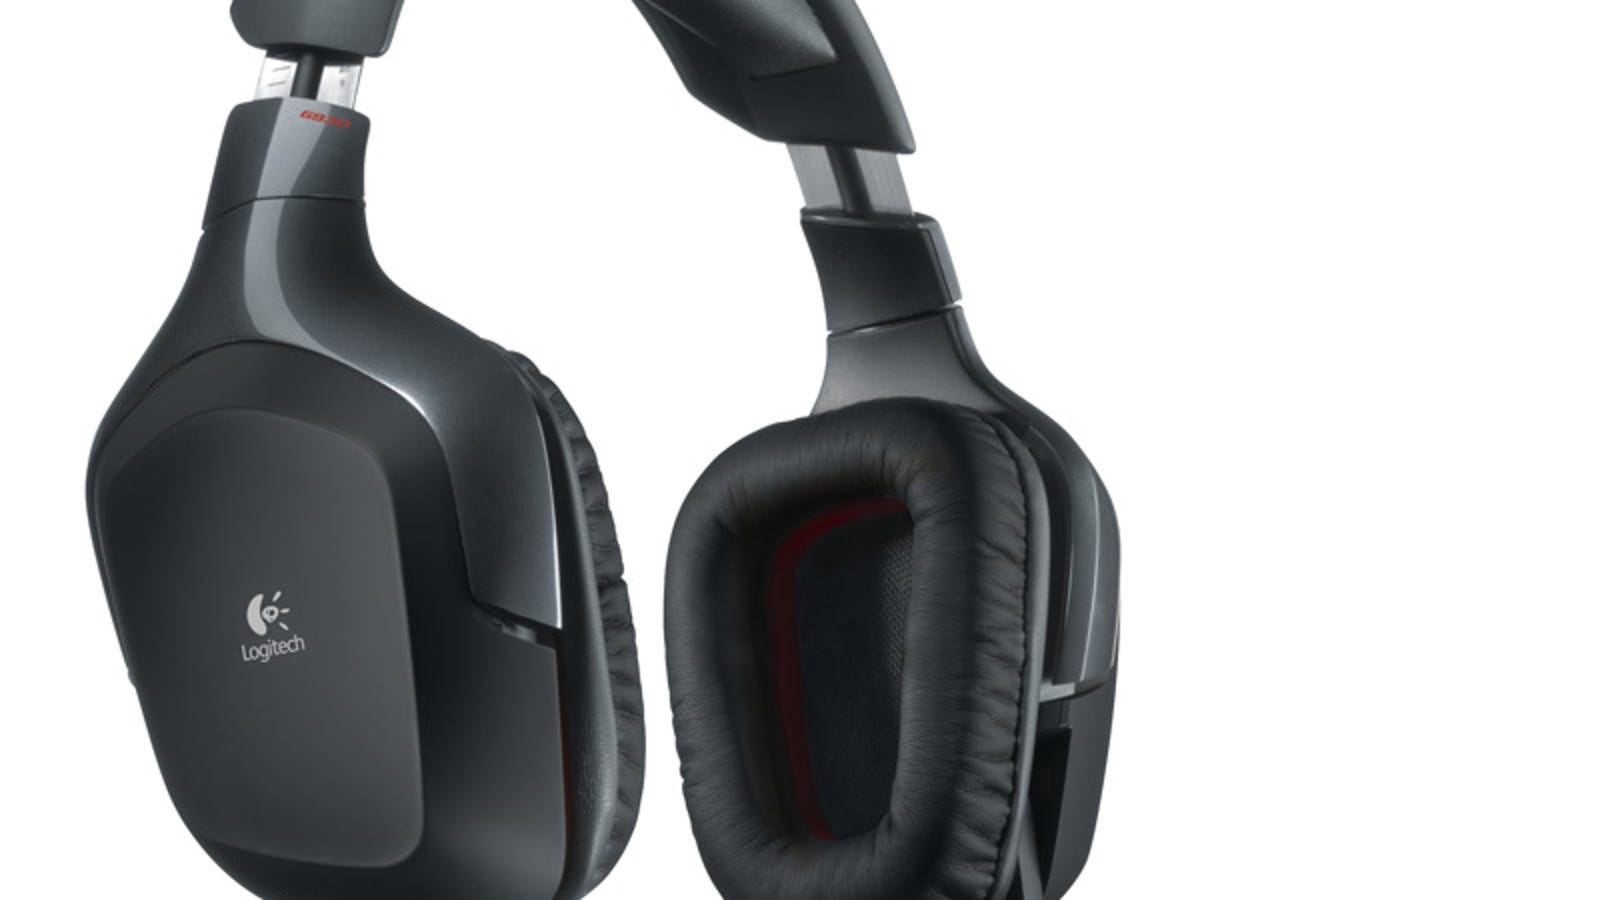 Logitech 7.1 Surround Sound G930 Gaming Headset Frags Wires Too